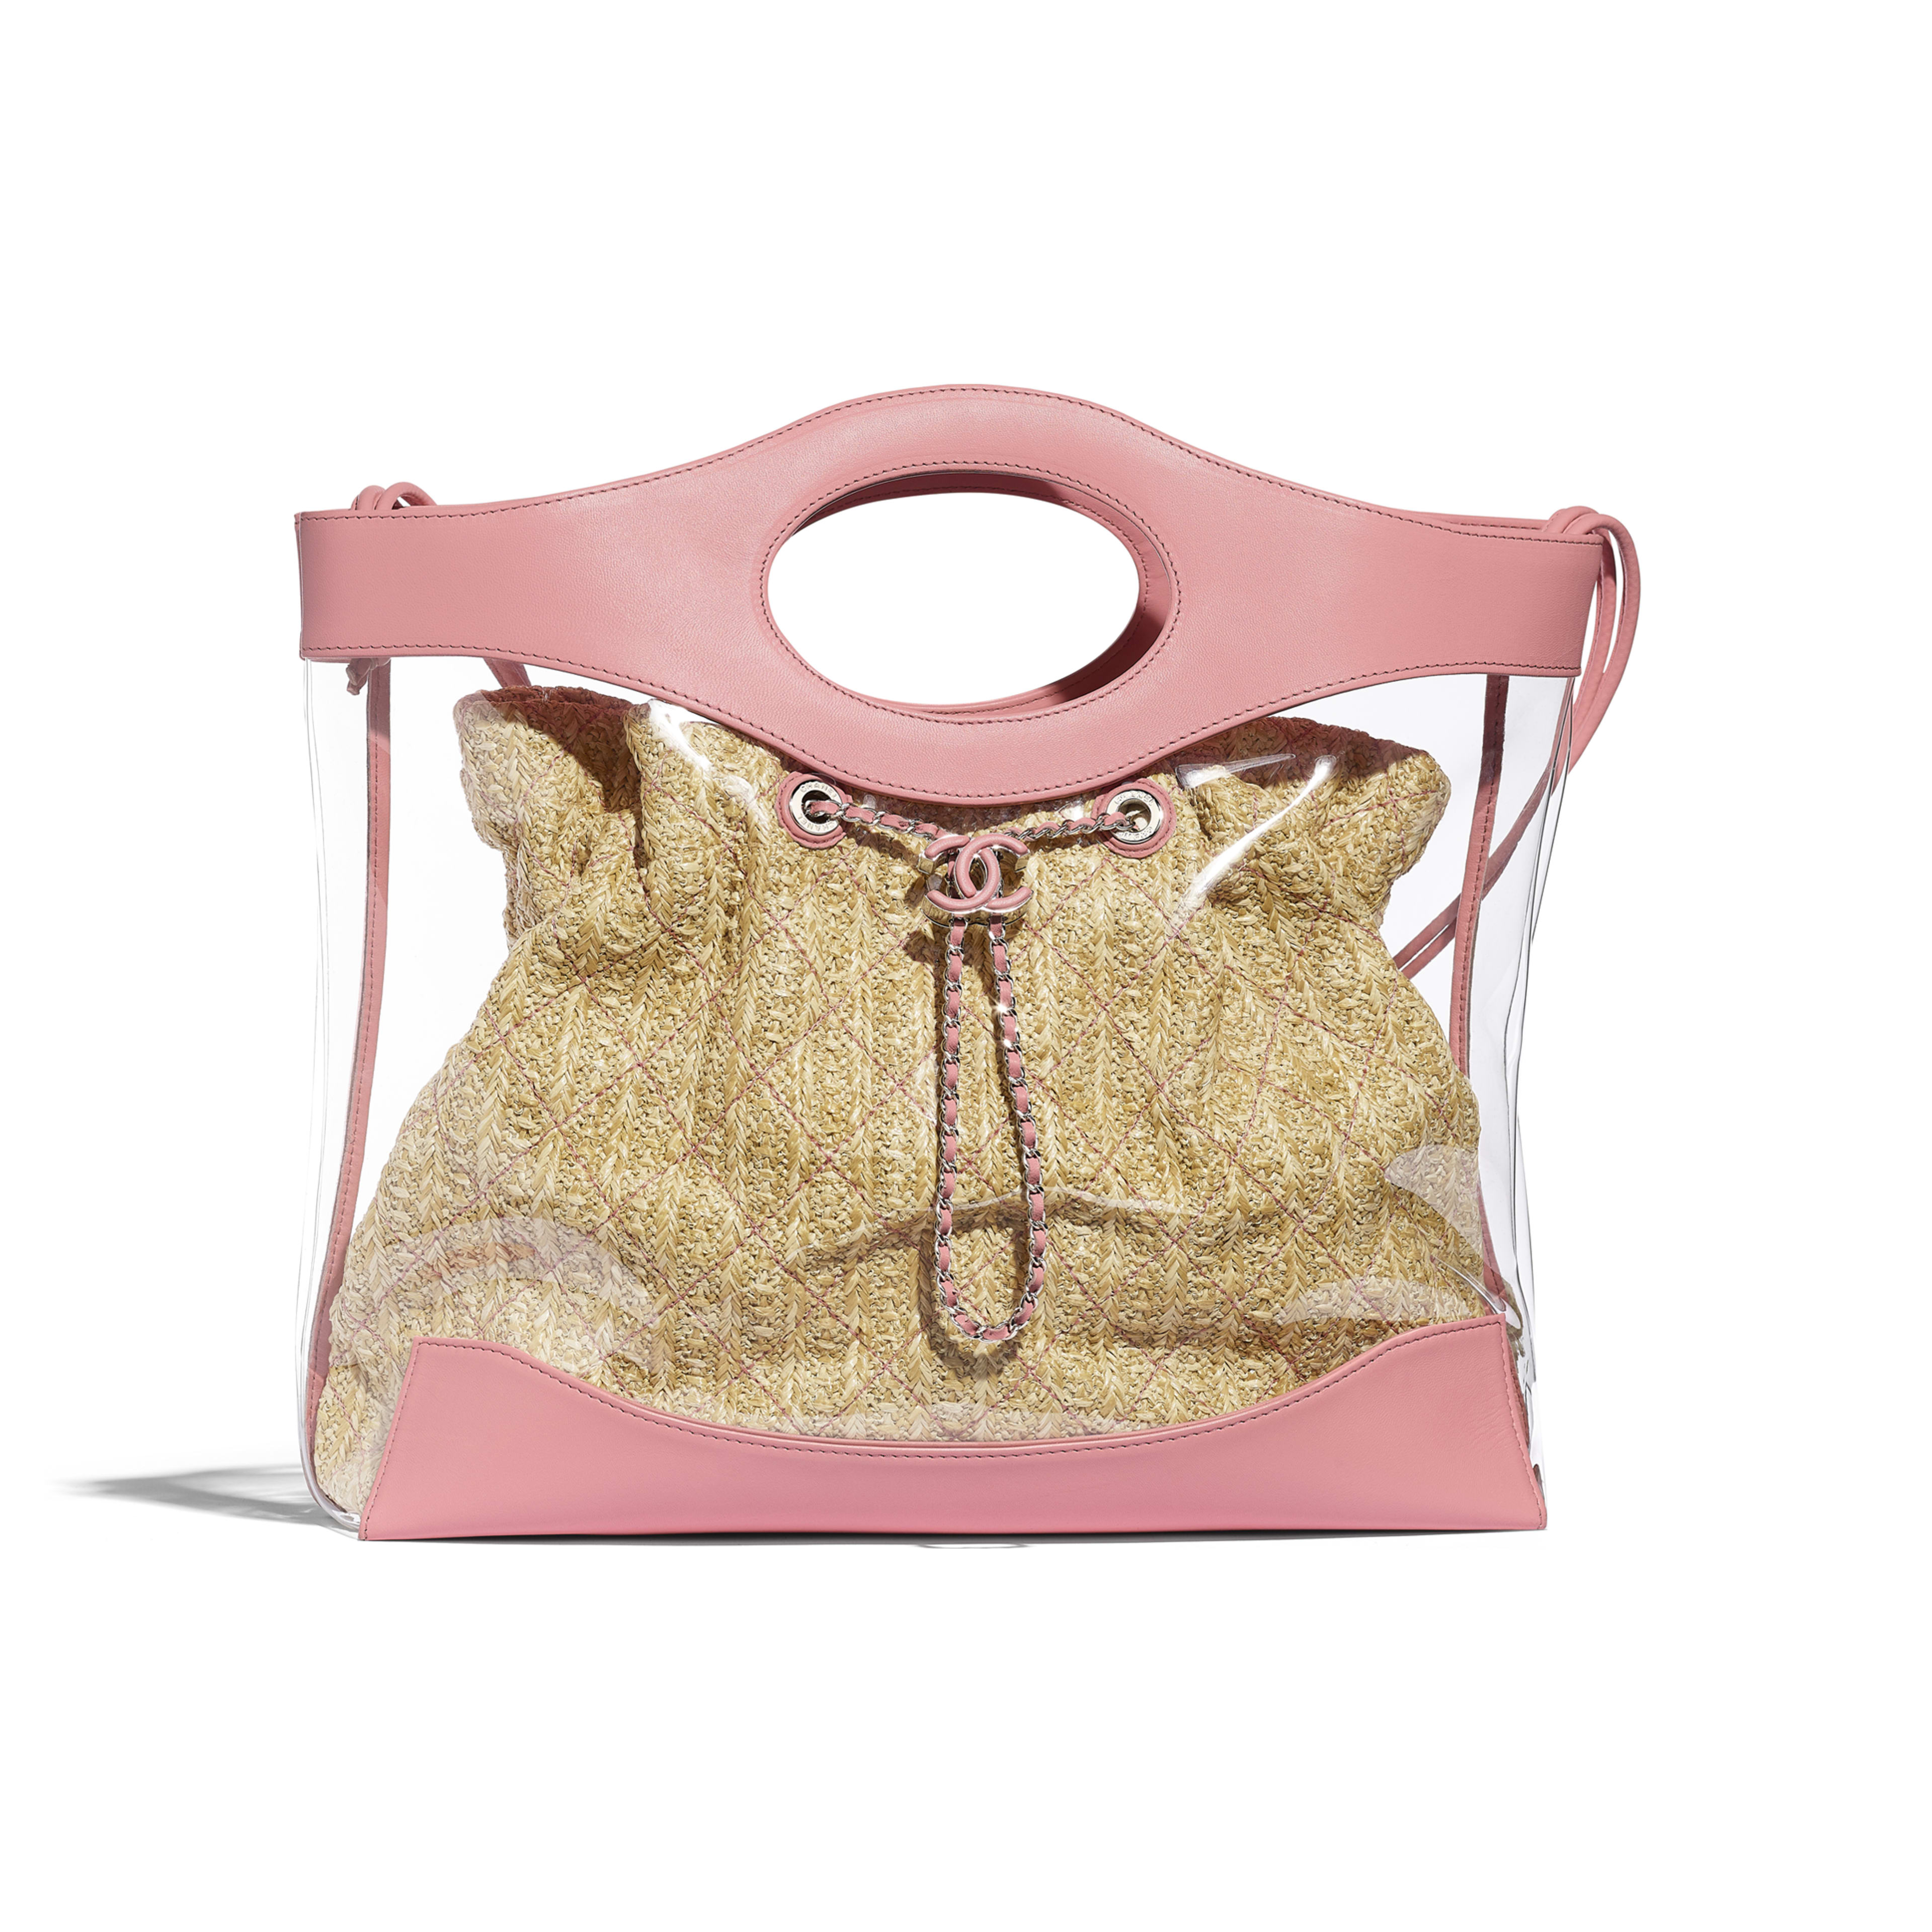 CHANEL 31 Shopping Bag - Pink - PVC, Calfskin & Silver-Tone Metal - Default view - see full sized version